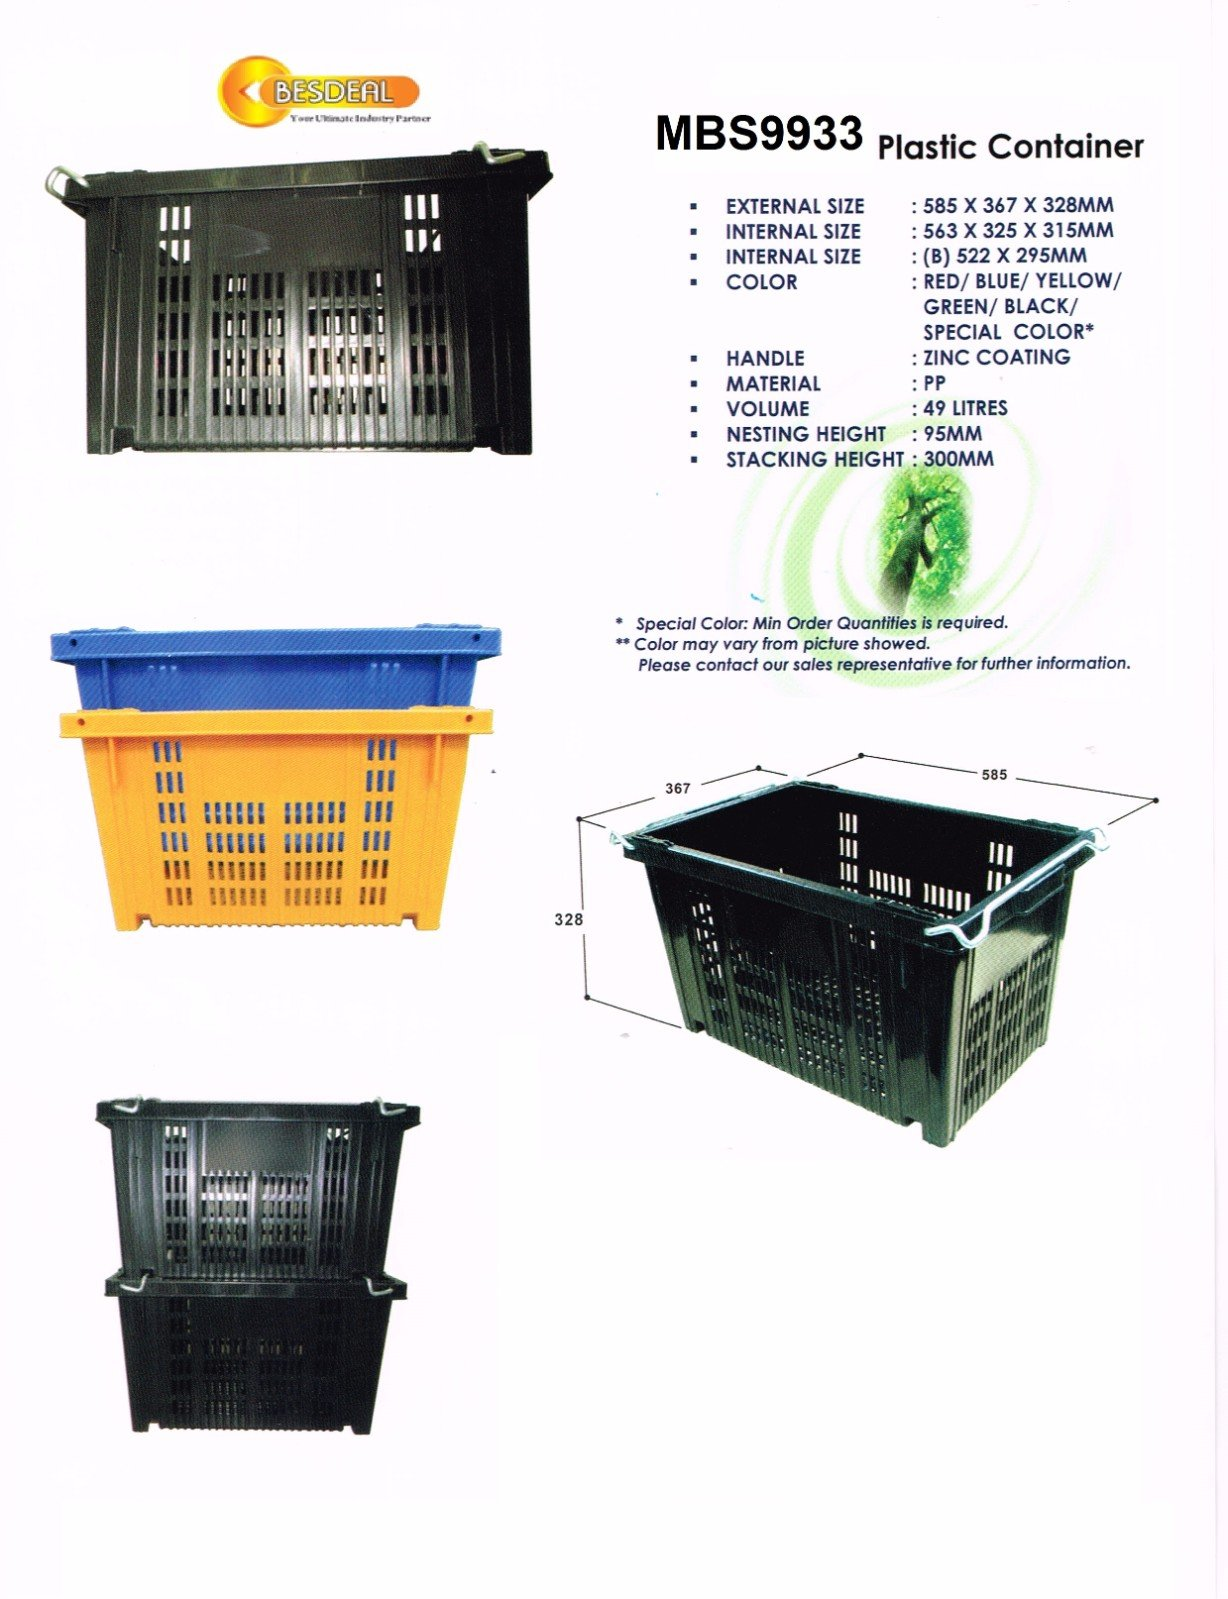 Plastic Container Mdl MBS9933 on Sales Now!!